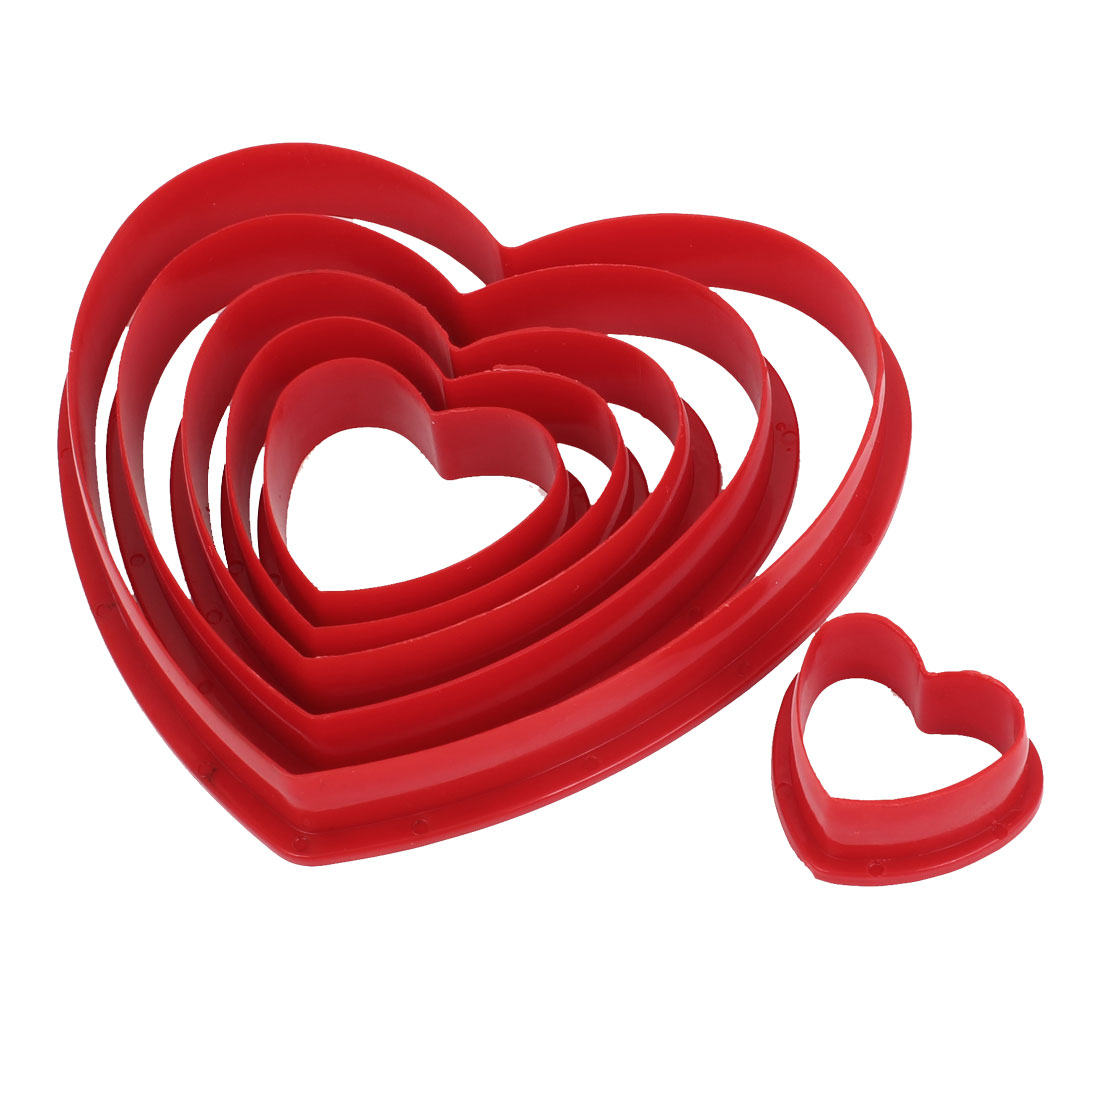 6 in 1 Kitchen DIY Cake Pastry Shaping Heart Style Cutter Mold Red